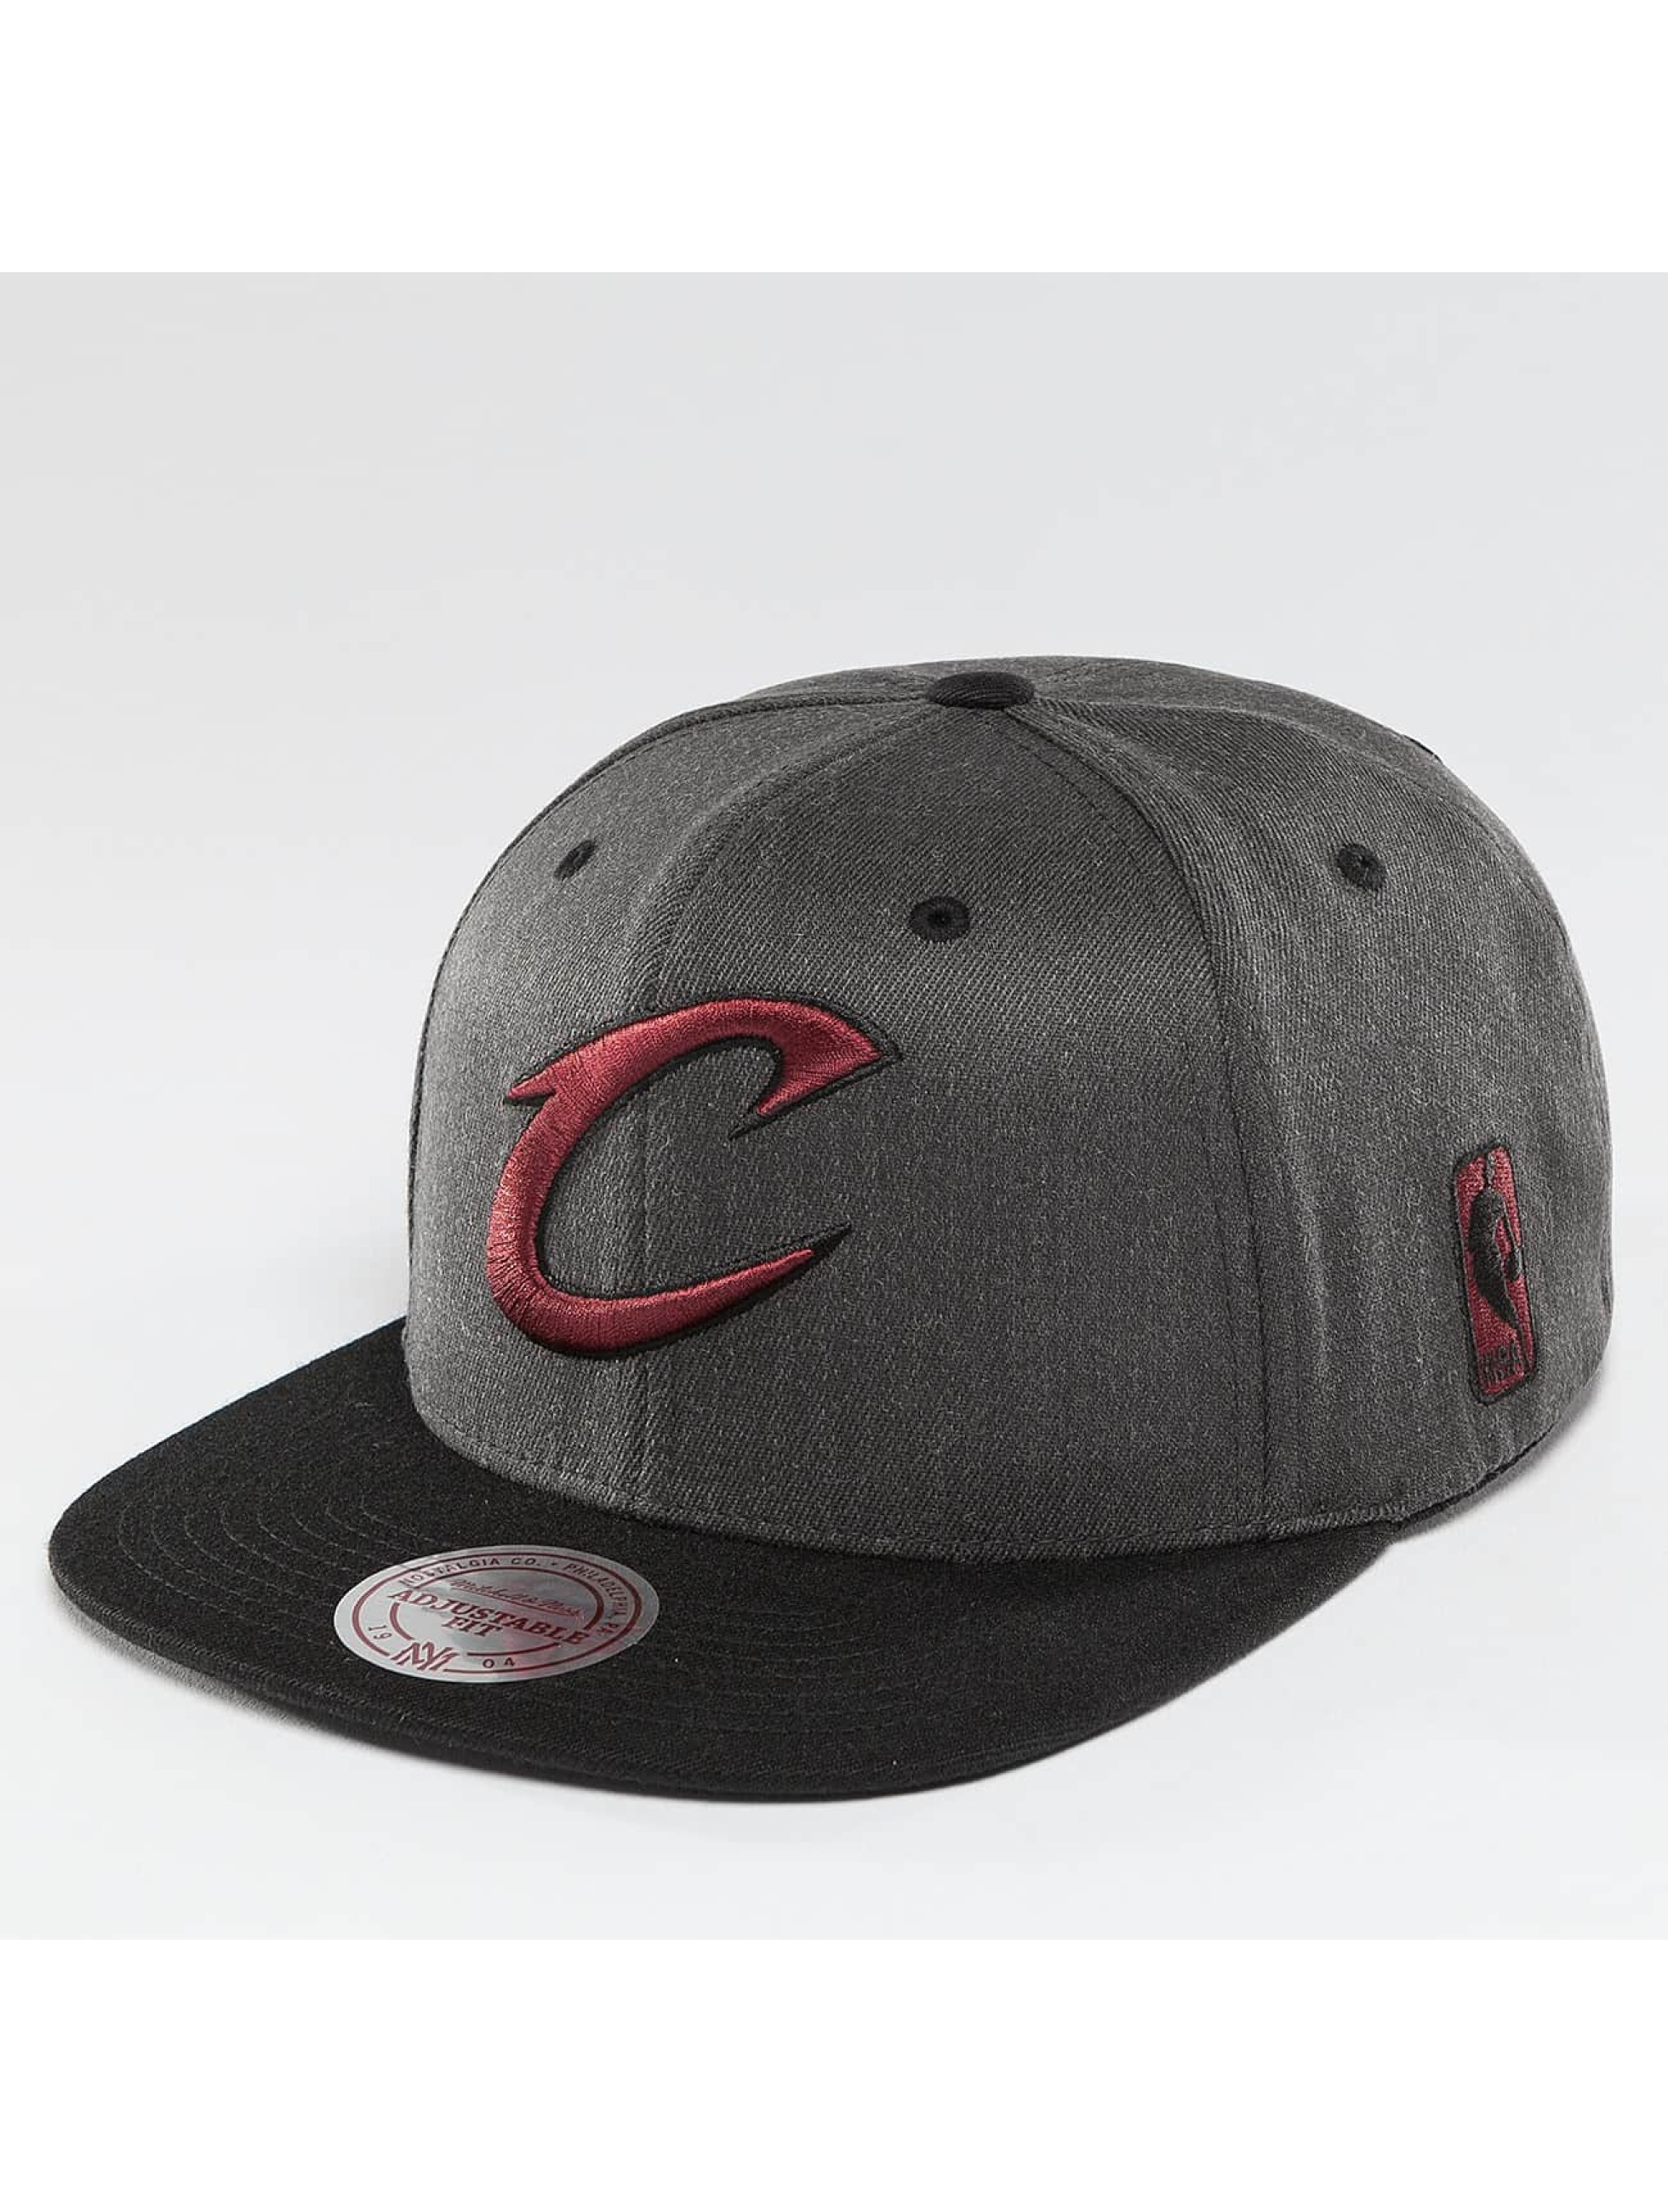 Mitchell & Ness Кепка с застёжкой NBA 2-Tone Cleveland Cavaliers серый